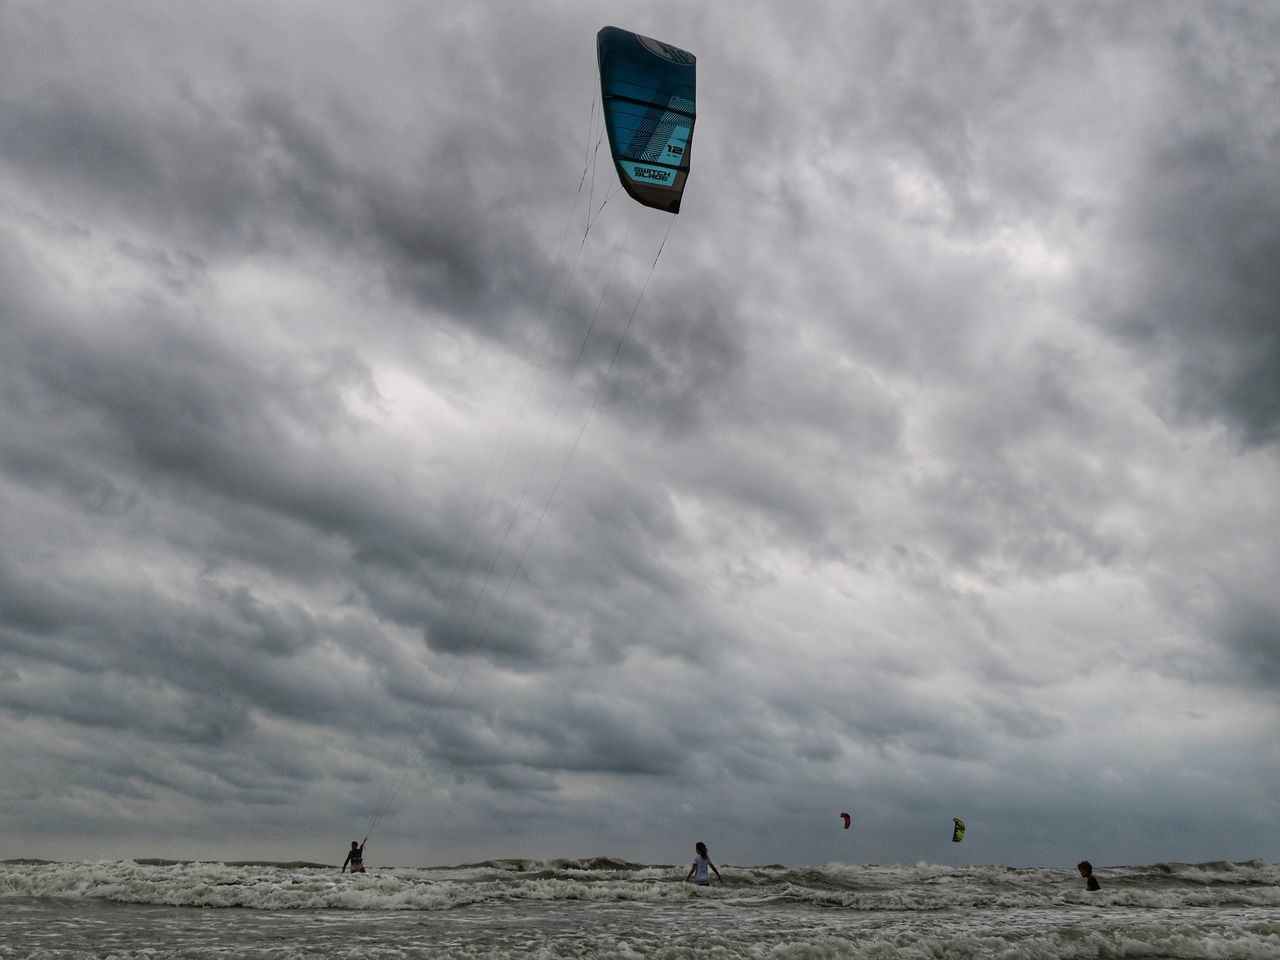 cloud - sky, sky, sea, nature, sport, overcast, leisure activity, water, horizon, beauty in nature, horizon over water, day, scenics - nature, land, adventure, group of people, outdoors, unrecognizable person, kiteboarding